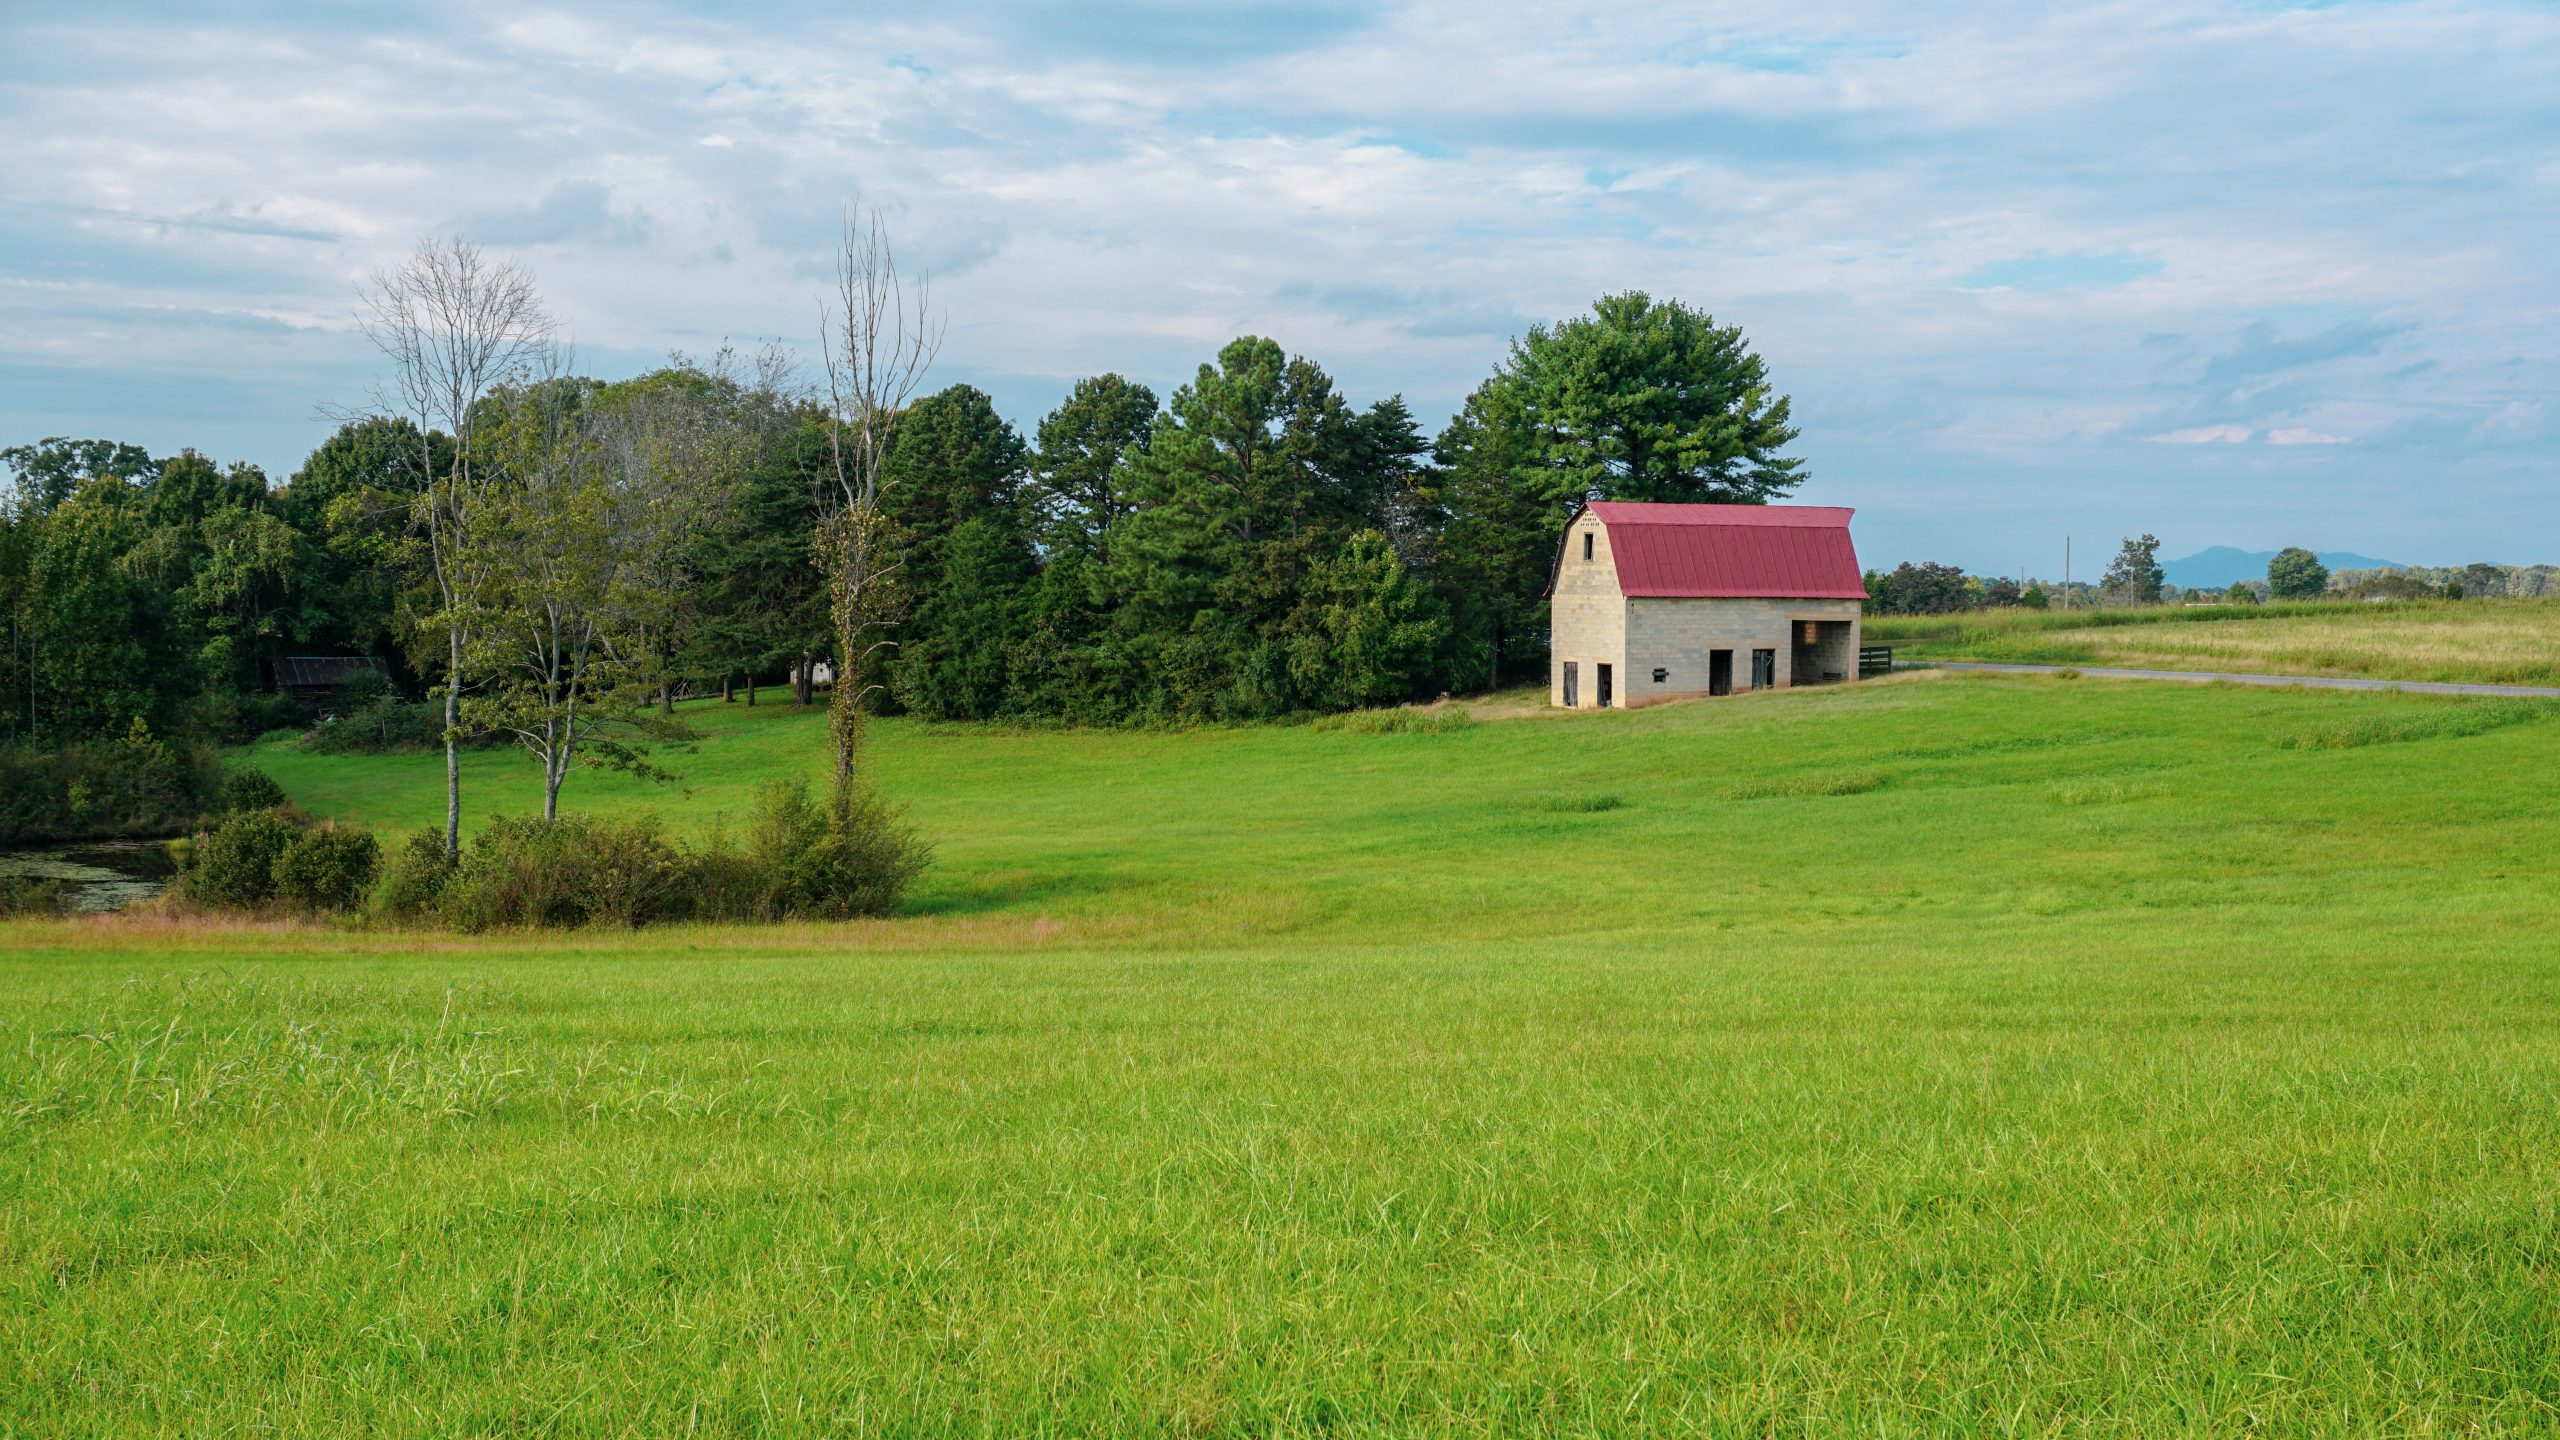 cute white barn with red roof in the Virginia countryside surrounded by lush green grass.